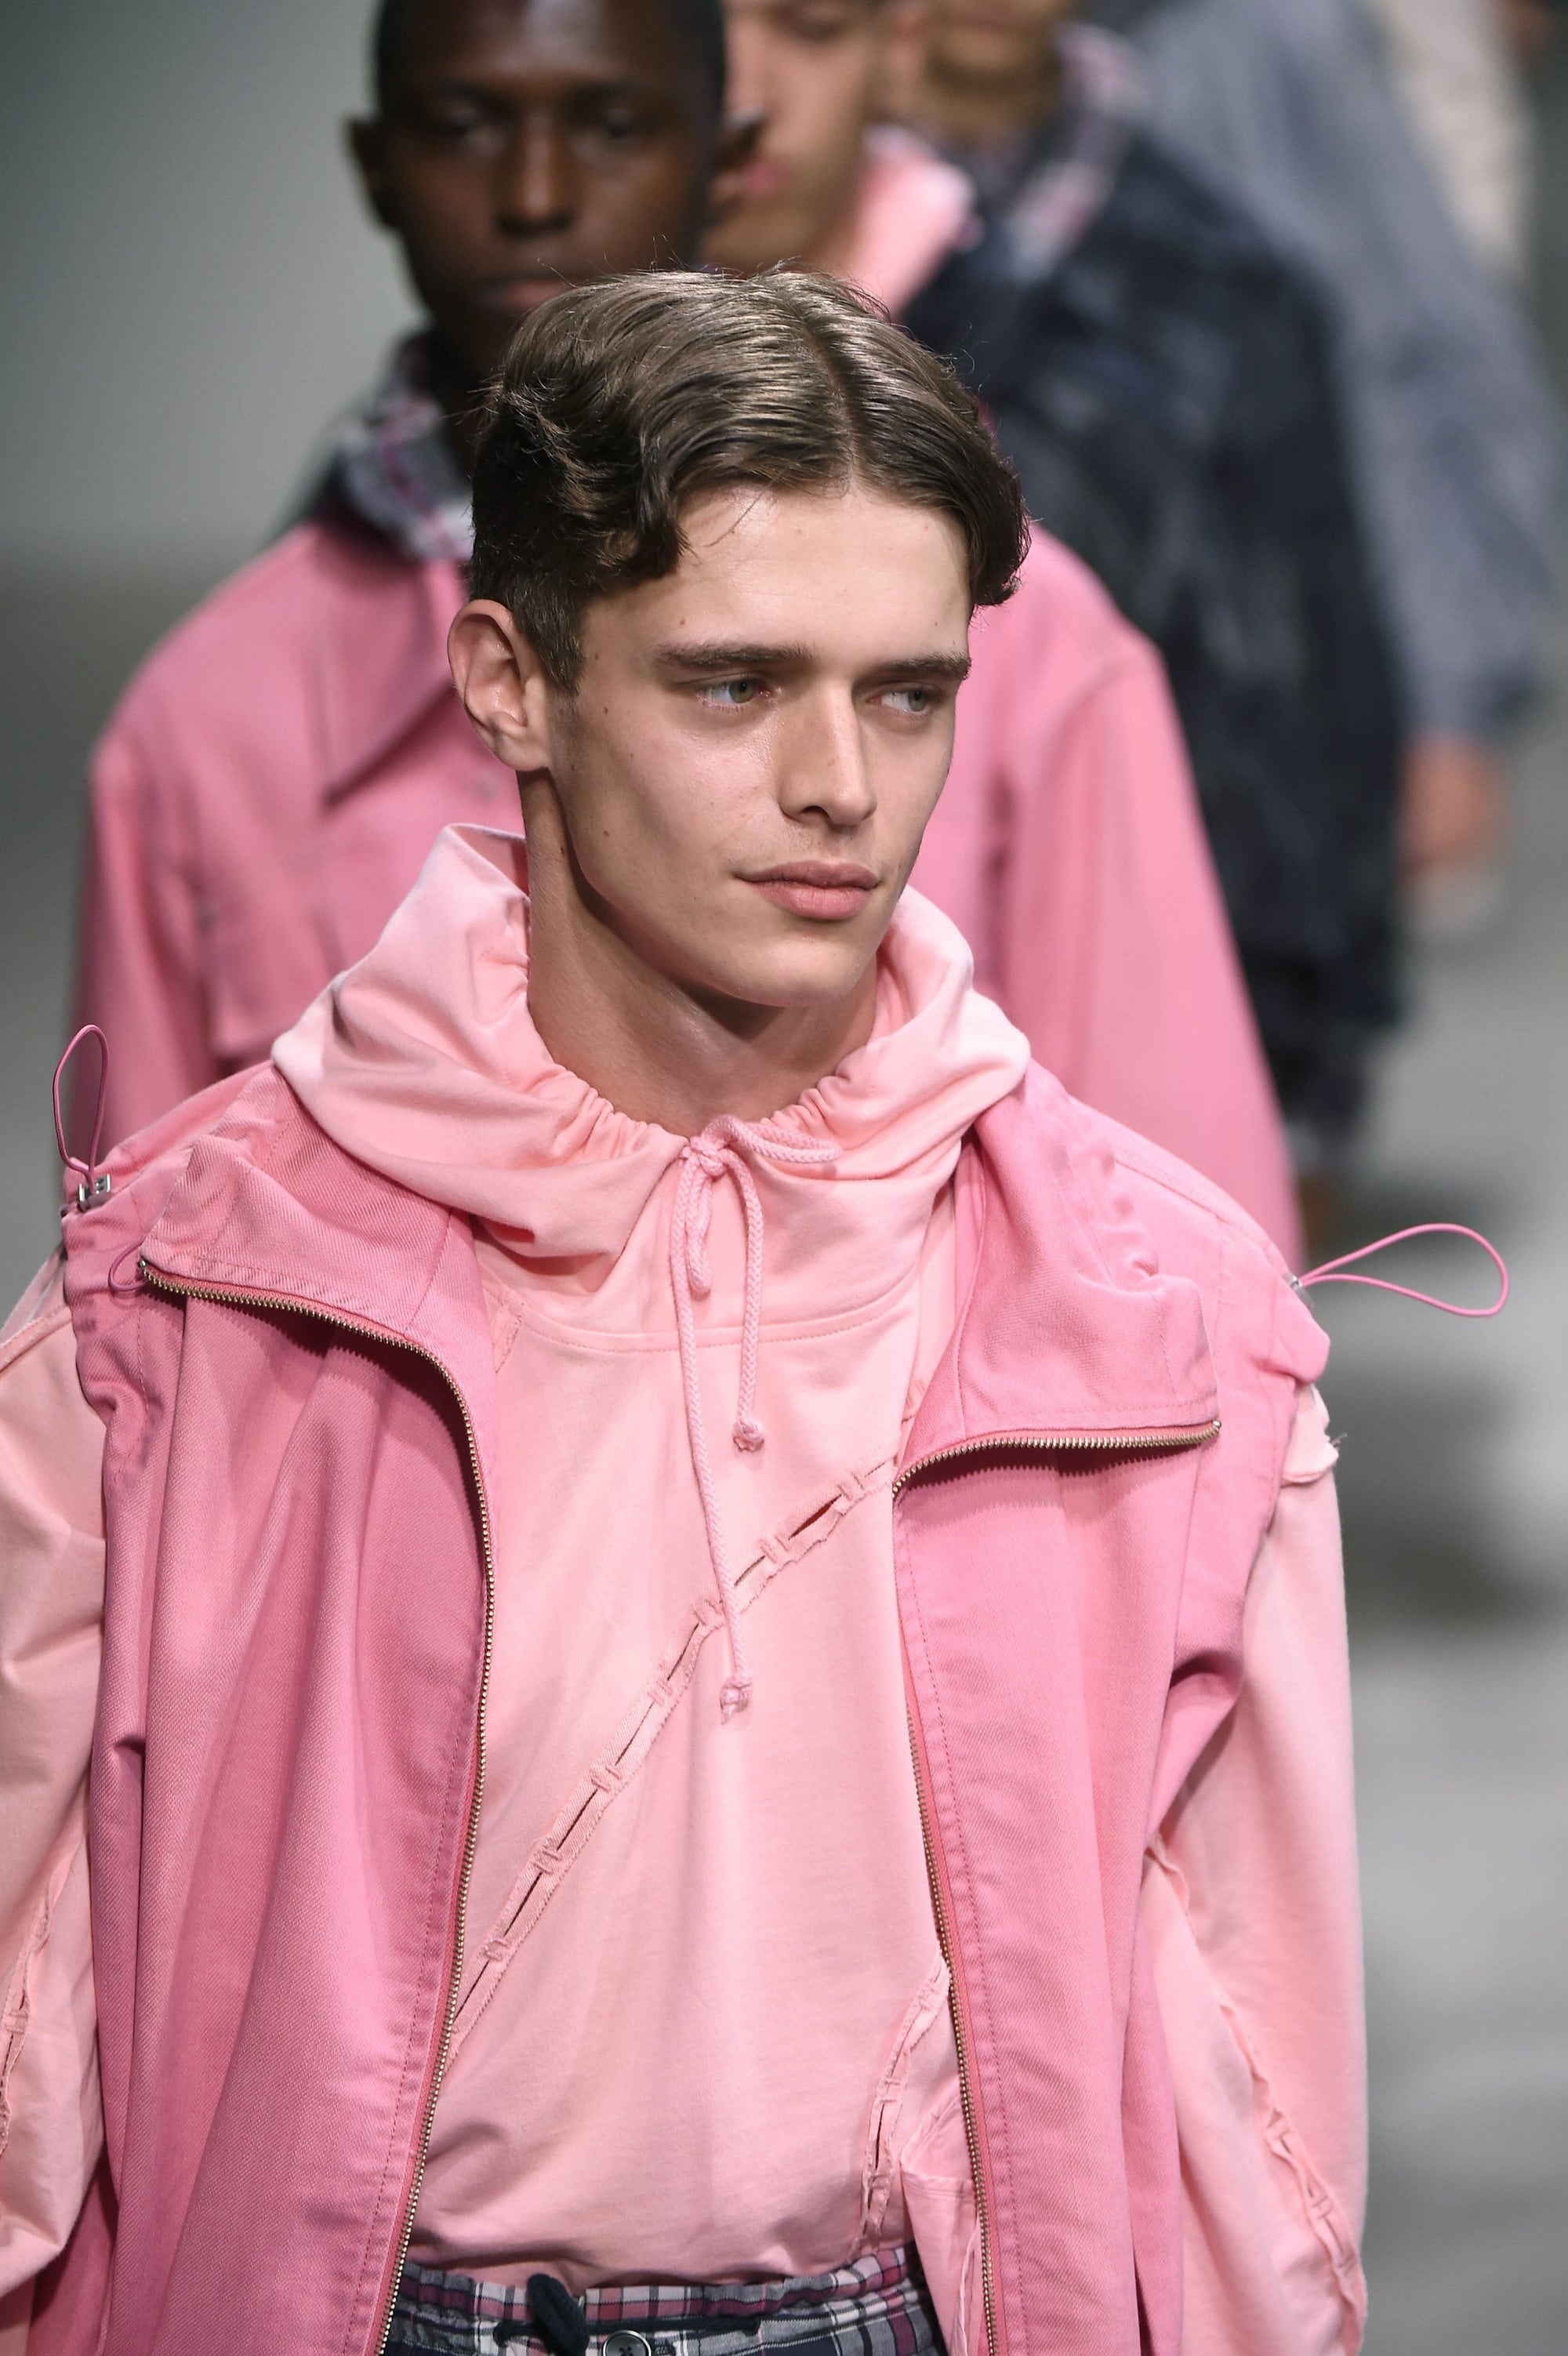 male model with curly curtains hair style, wearing pink on the Feng Chen Wang show